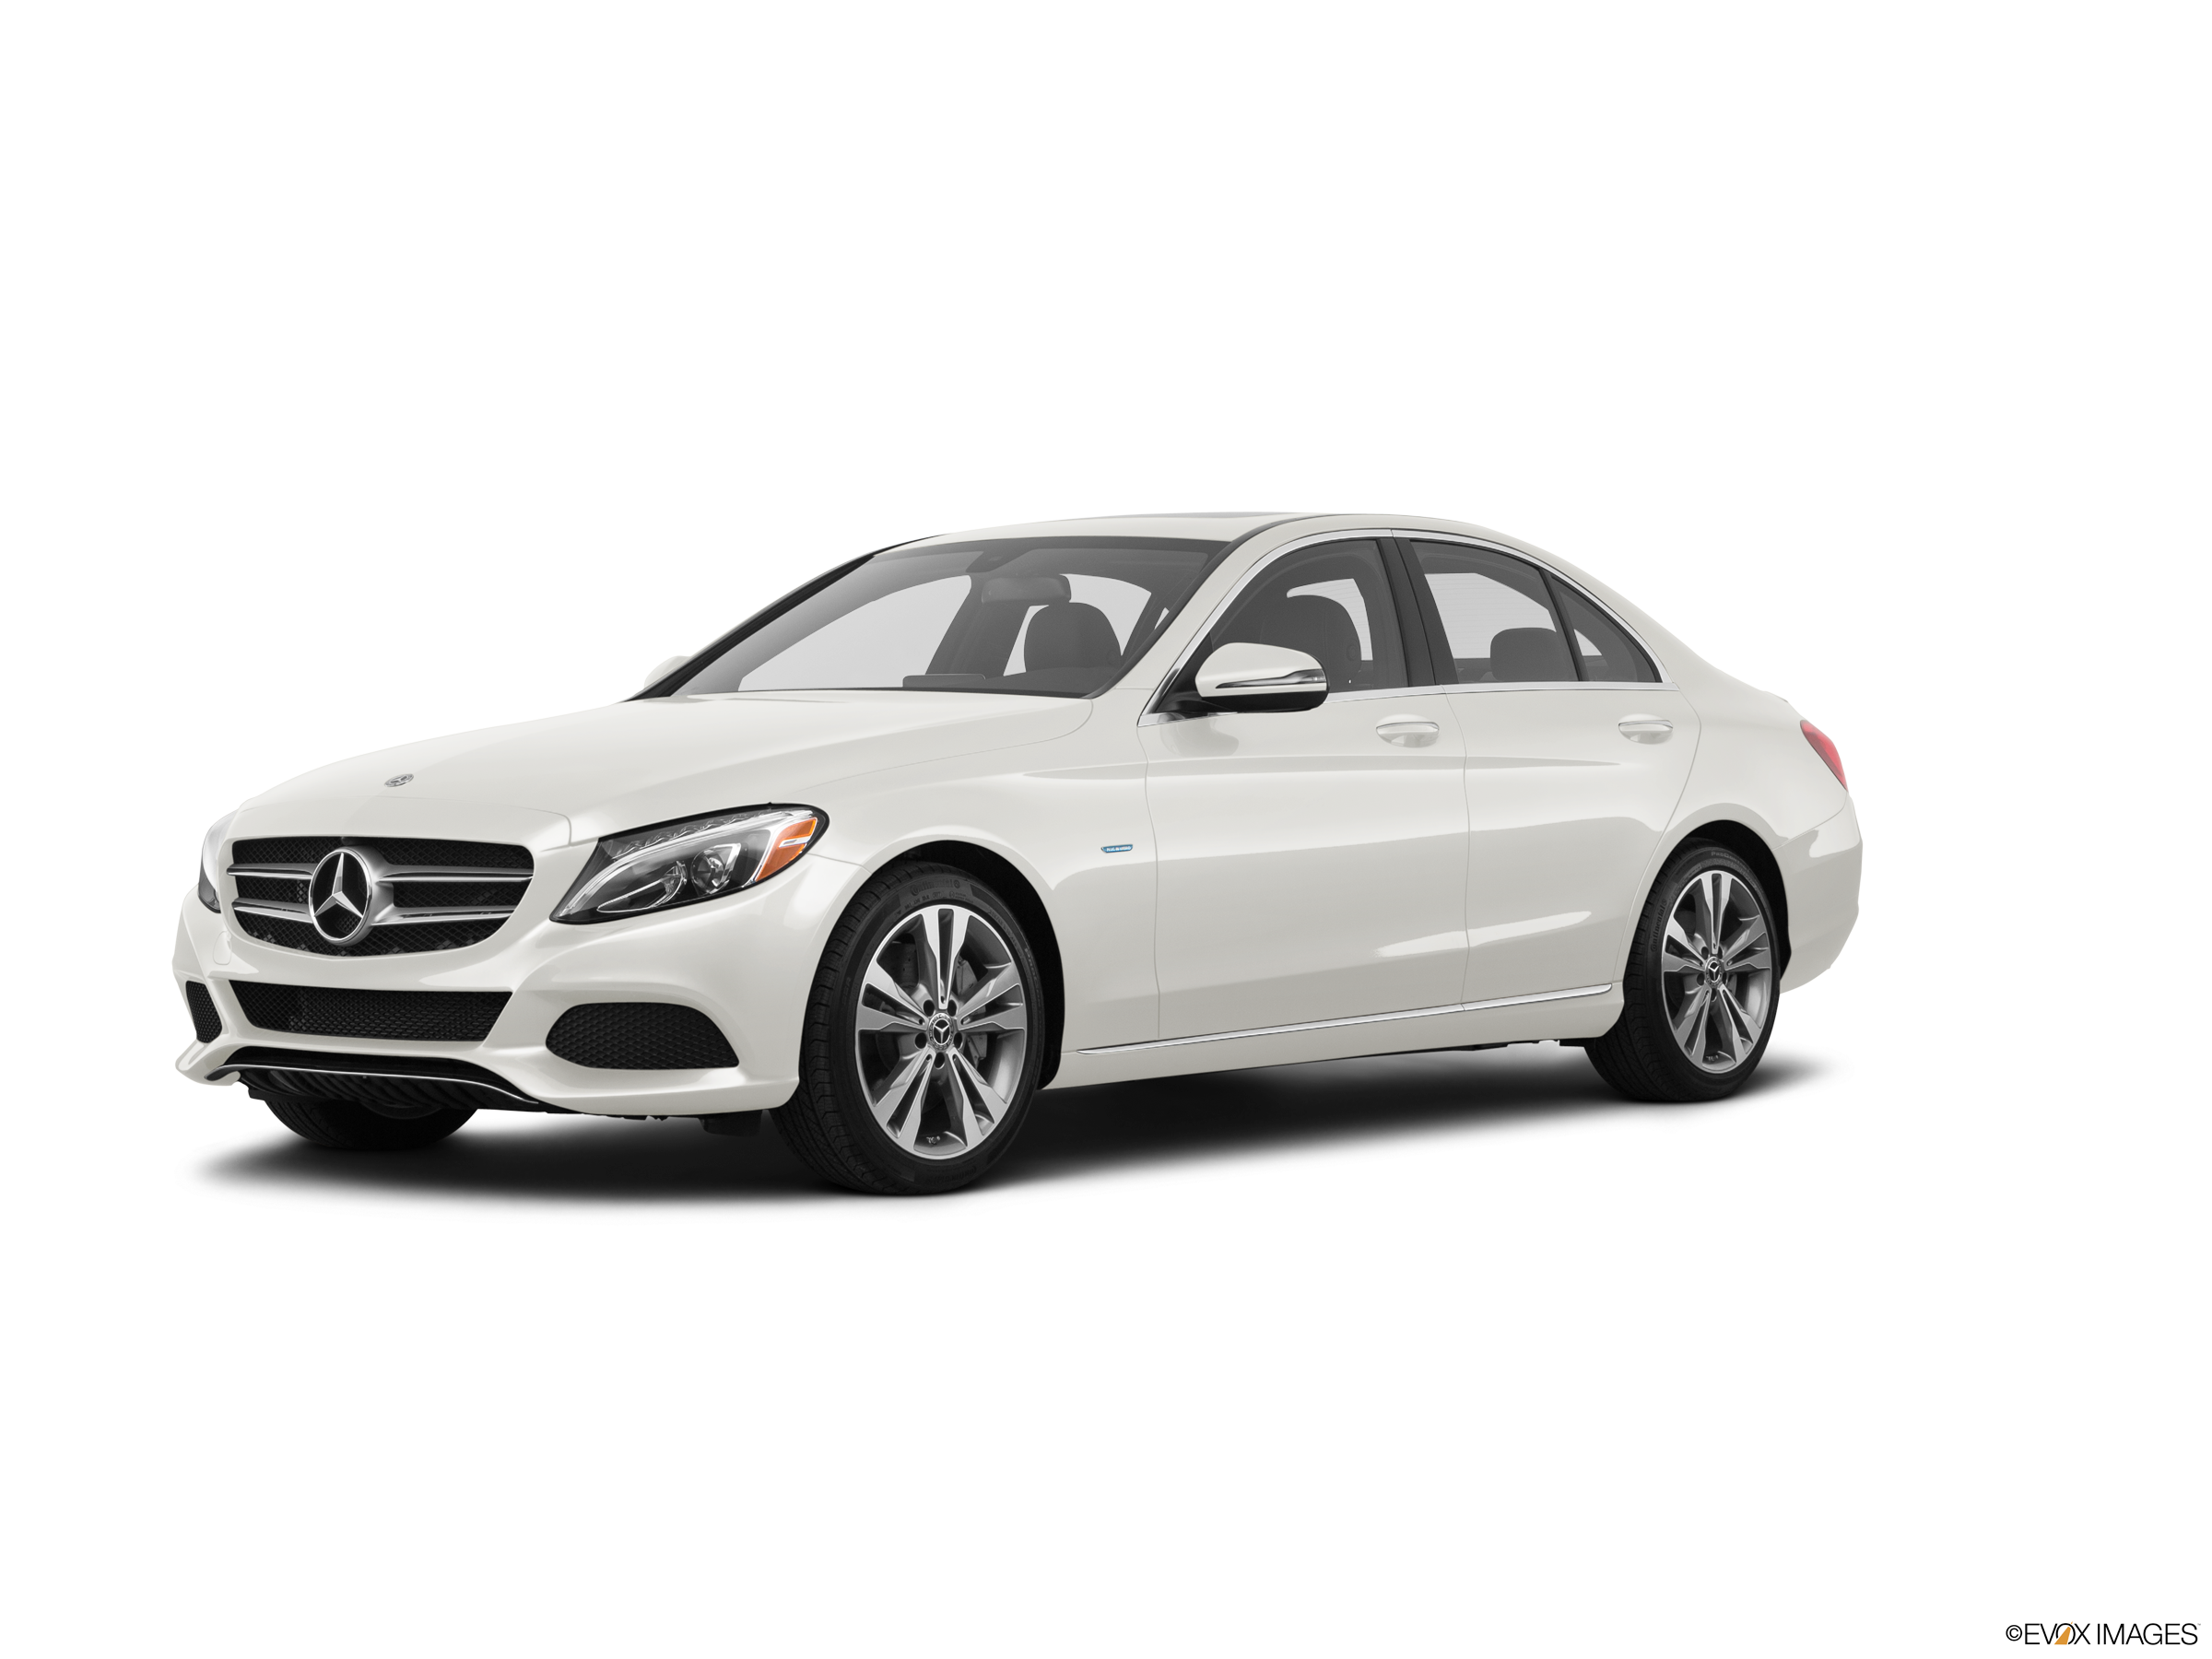 Top Expert Rated Electric Cars of 2018 - 2018 Mercedes-Benz C-Class